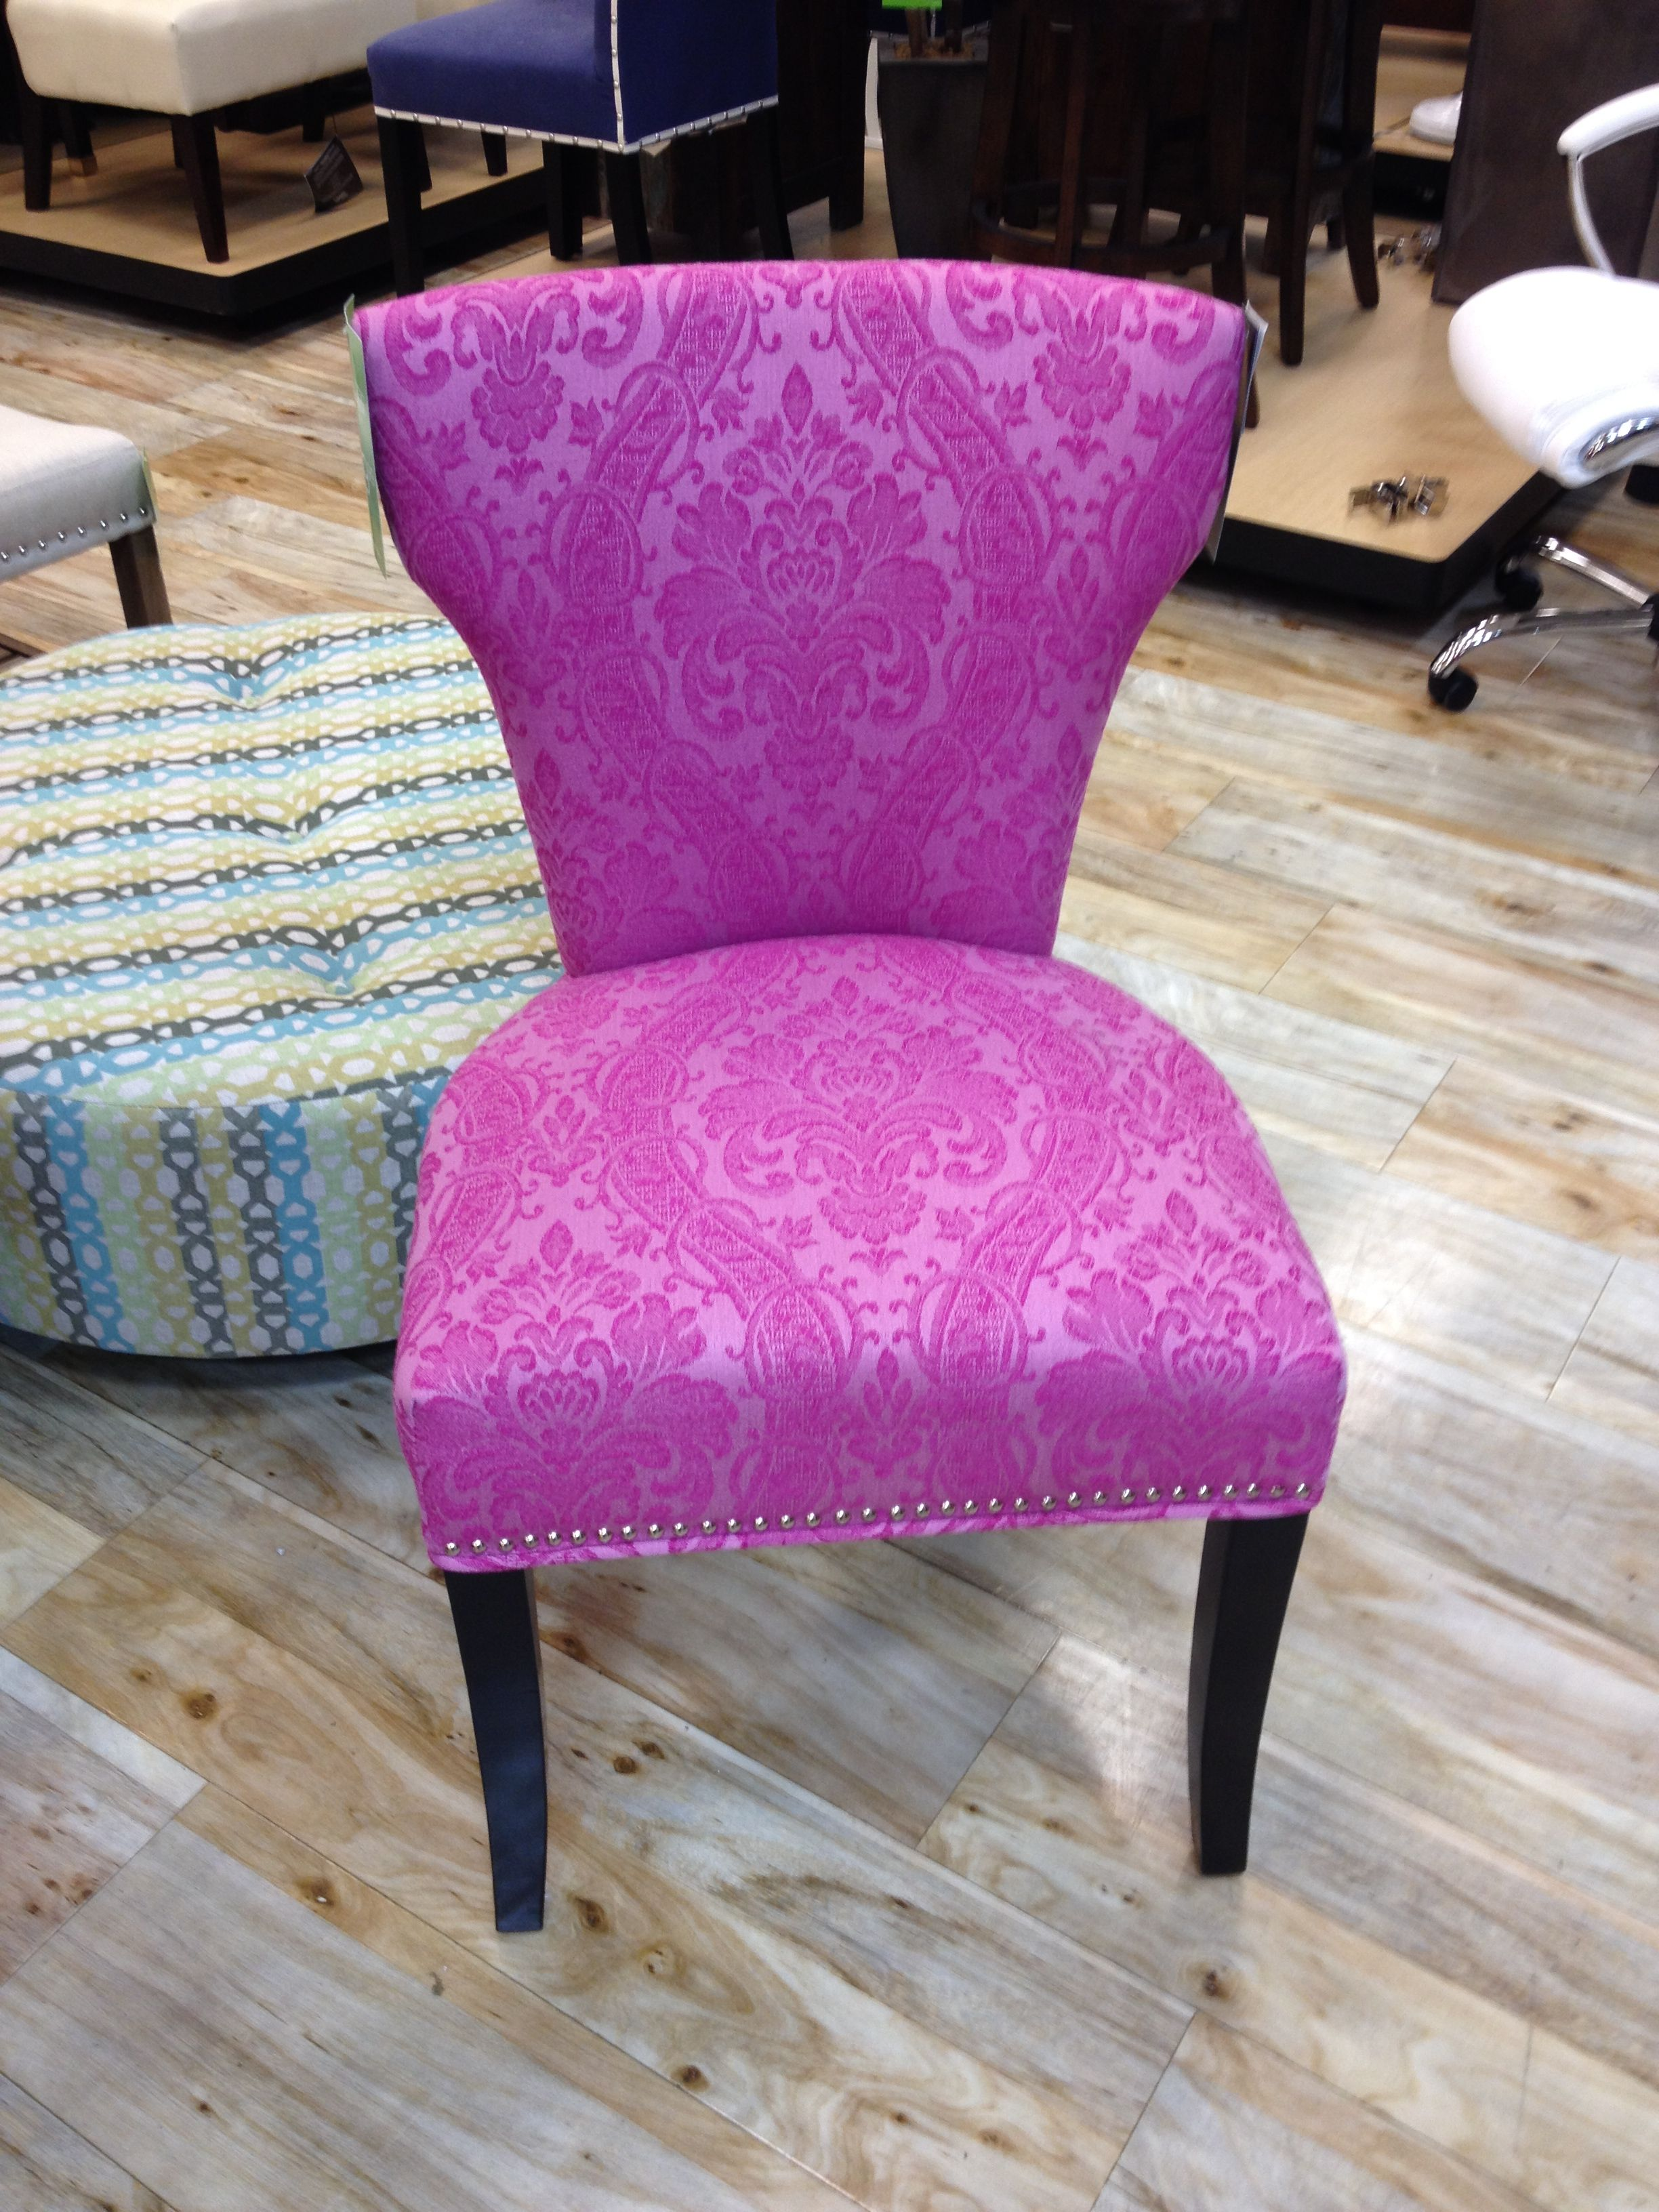 Cynthia Rowley Chair At Home Goods $129